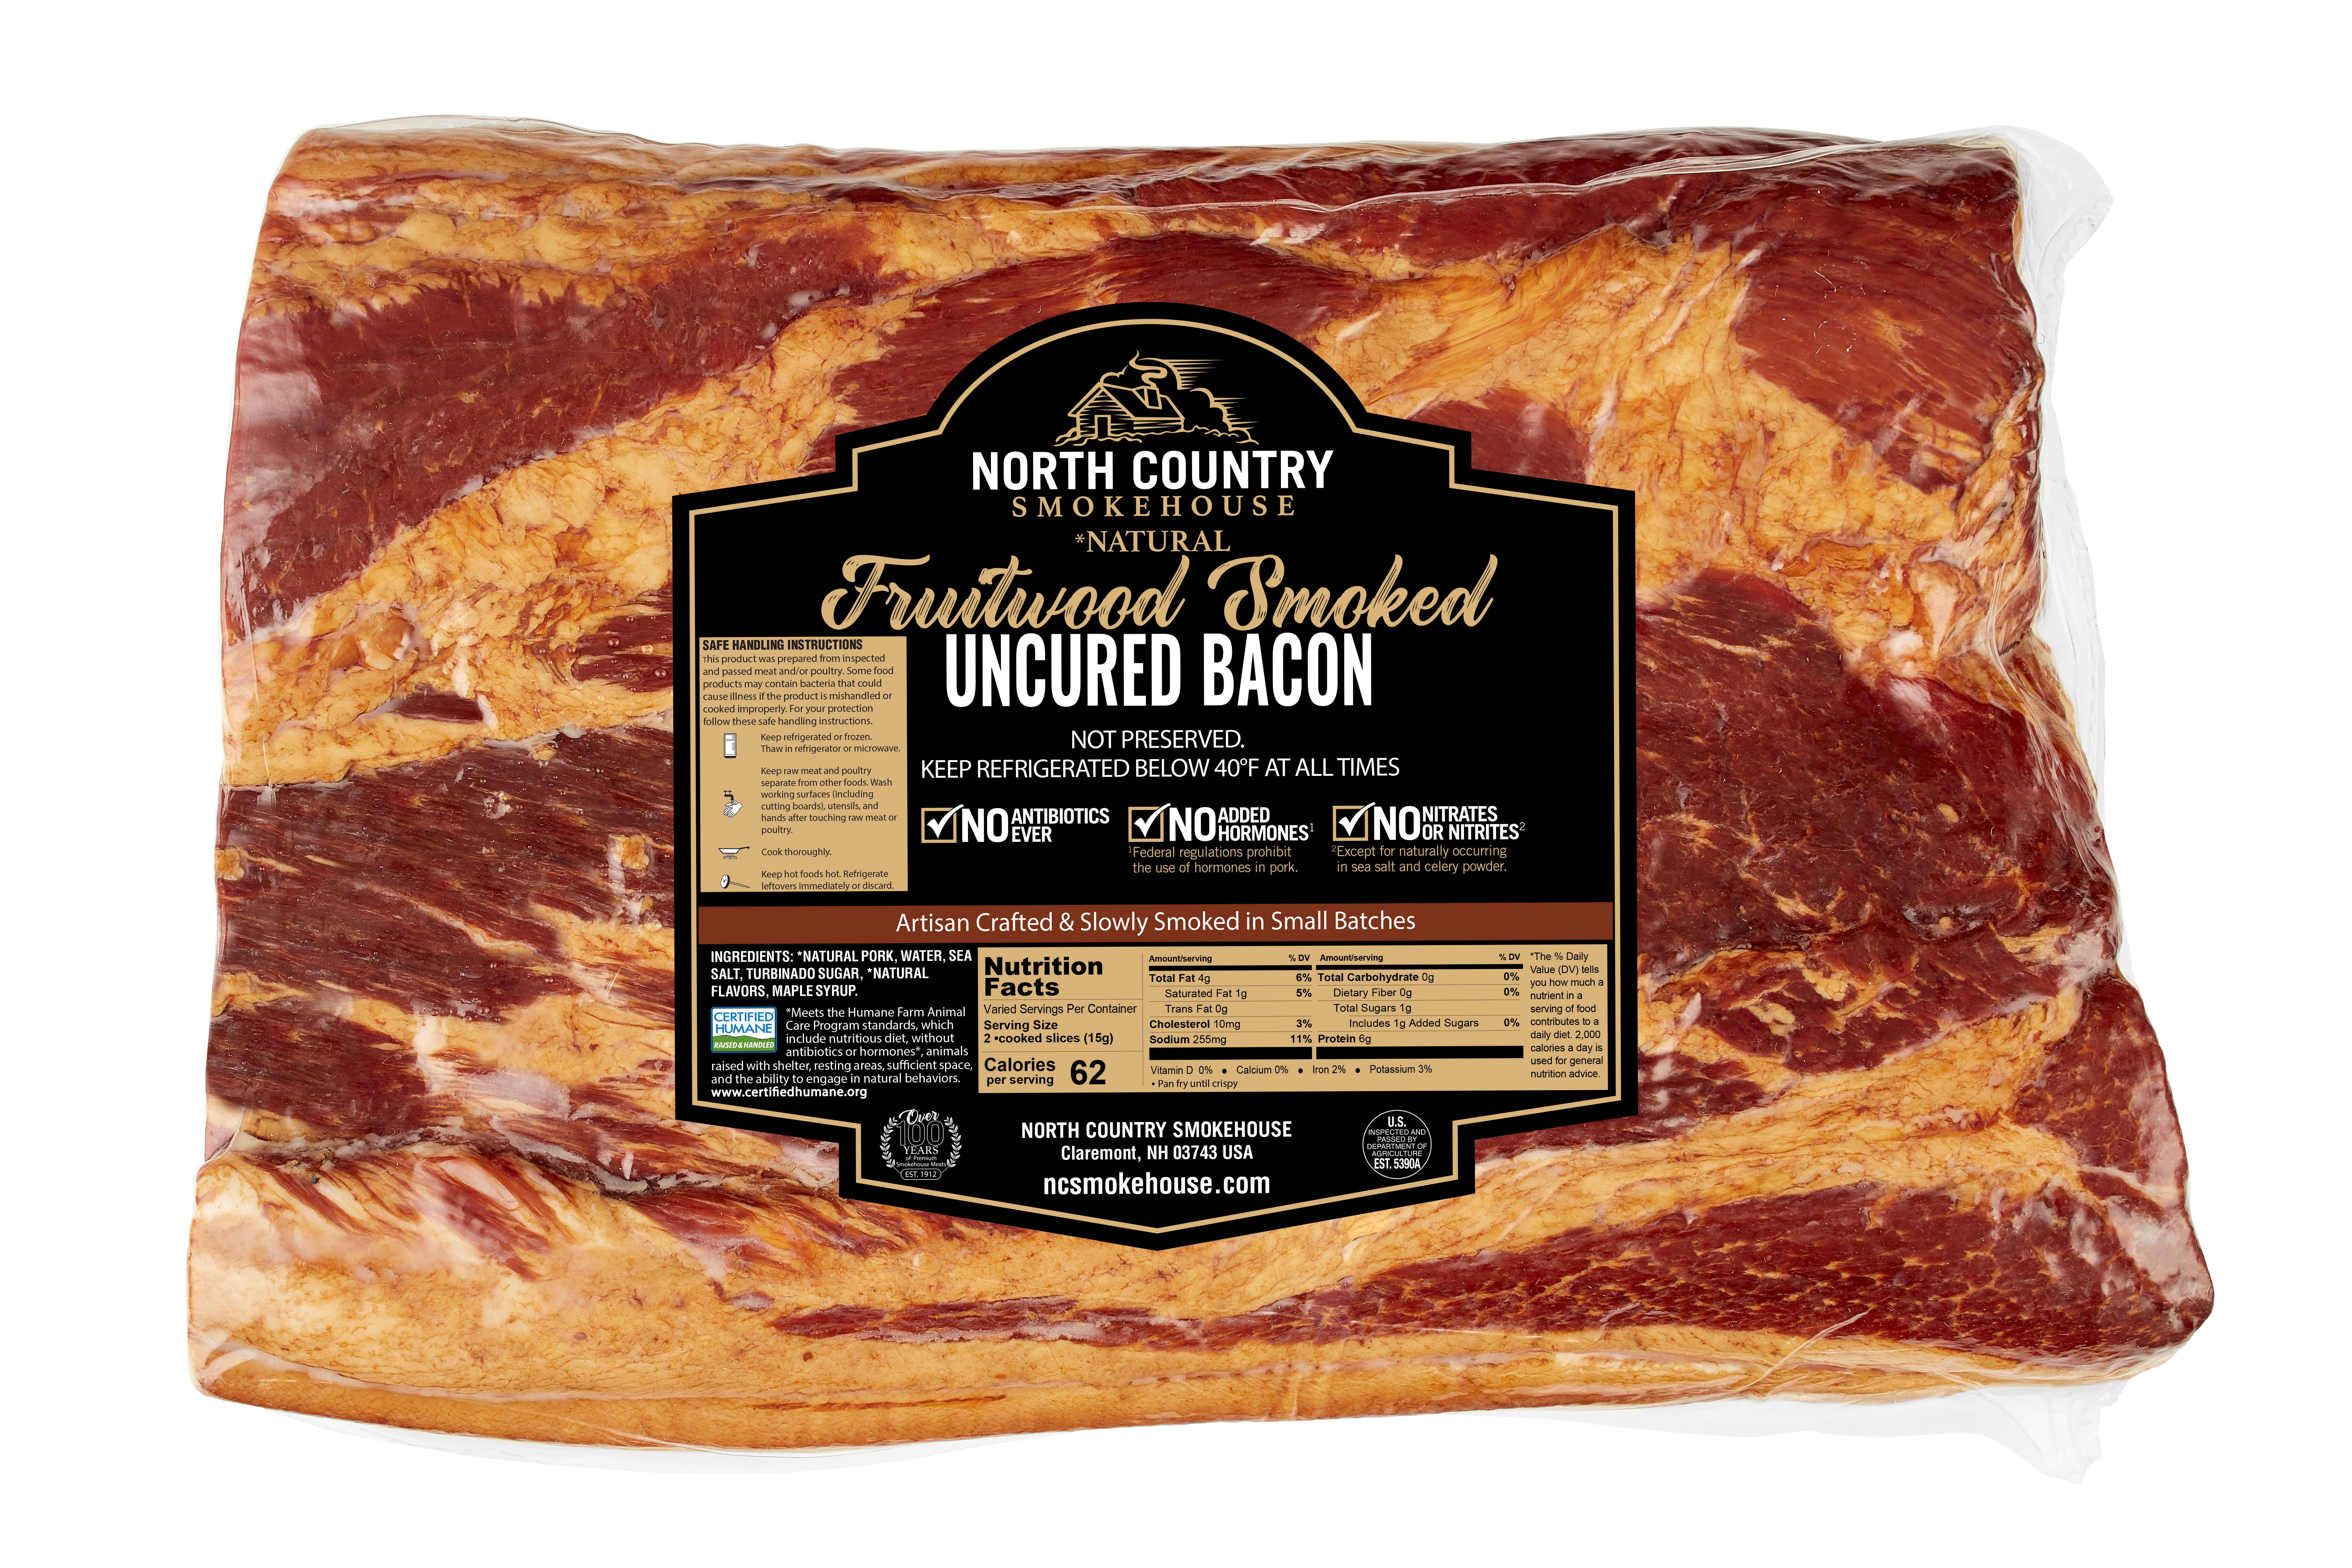 Natural Fruitwood Smoked Slab Bacon - 1, 5-7 lb. package